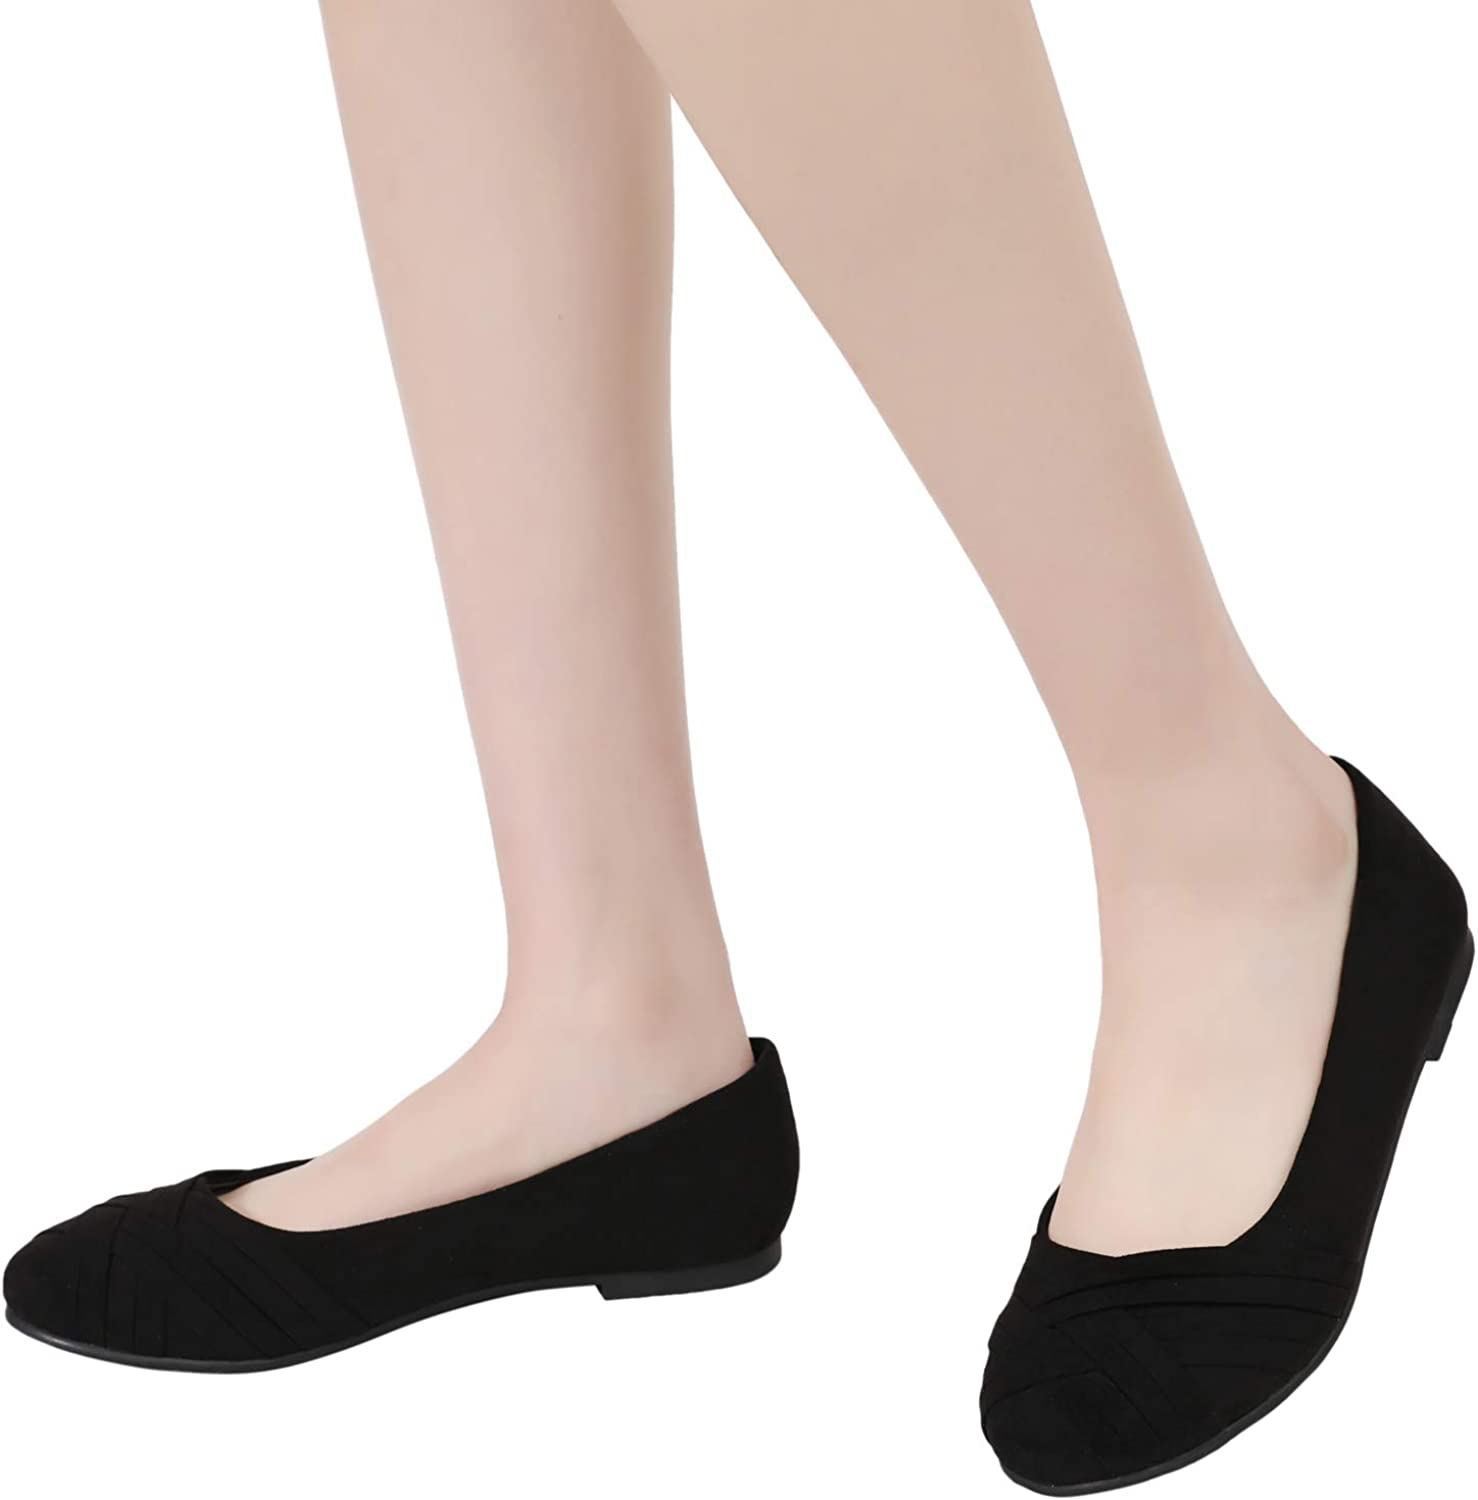 Round Toe Suede Classic Cozy Cute Slip-on Ballet Flats. Ataiwee Womens Wide Width Flat Shoes